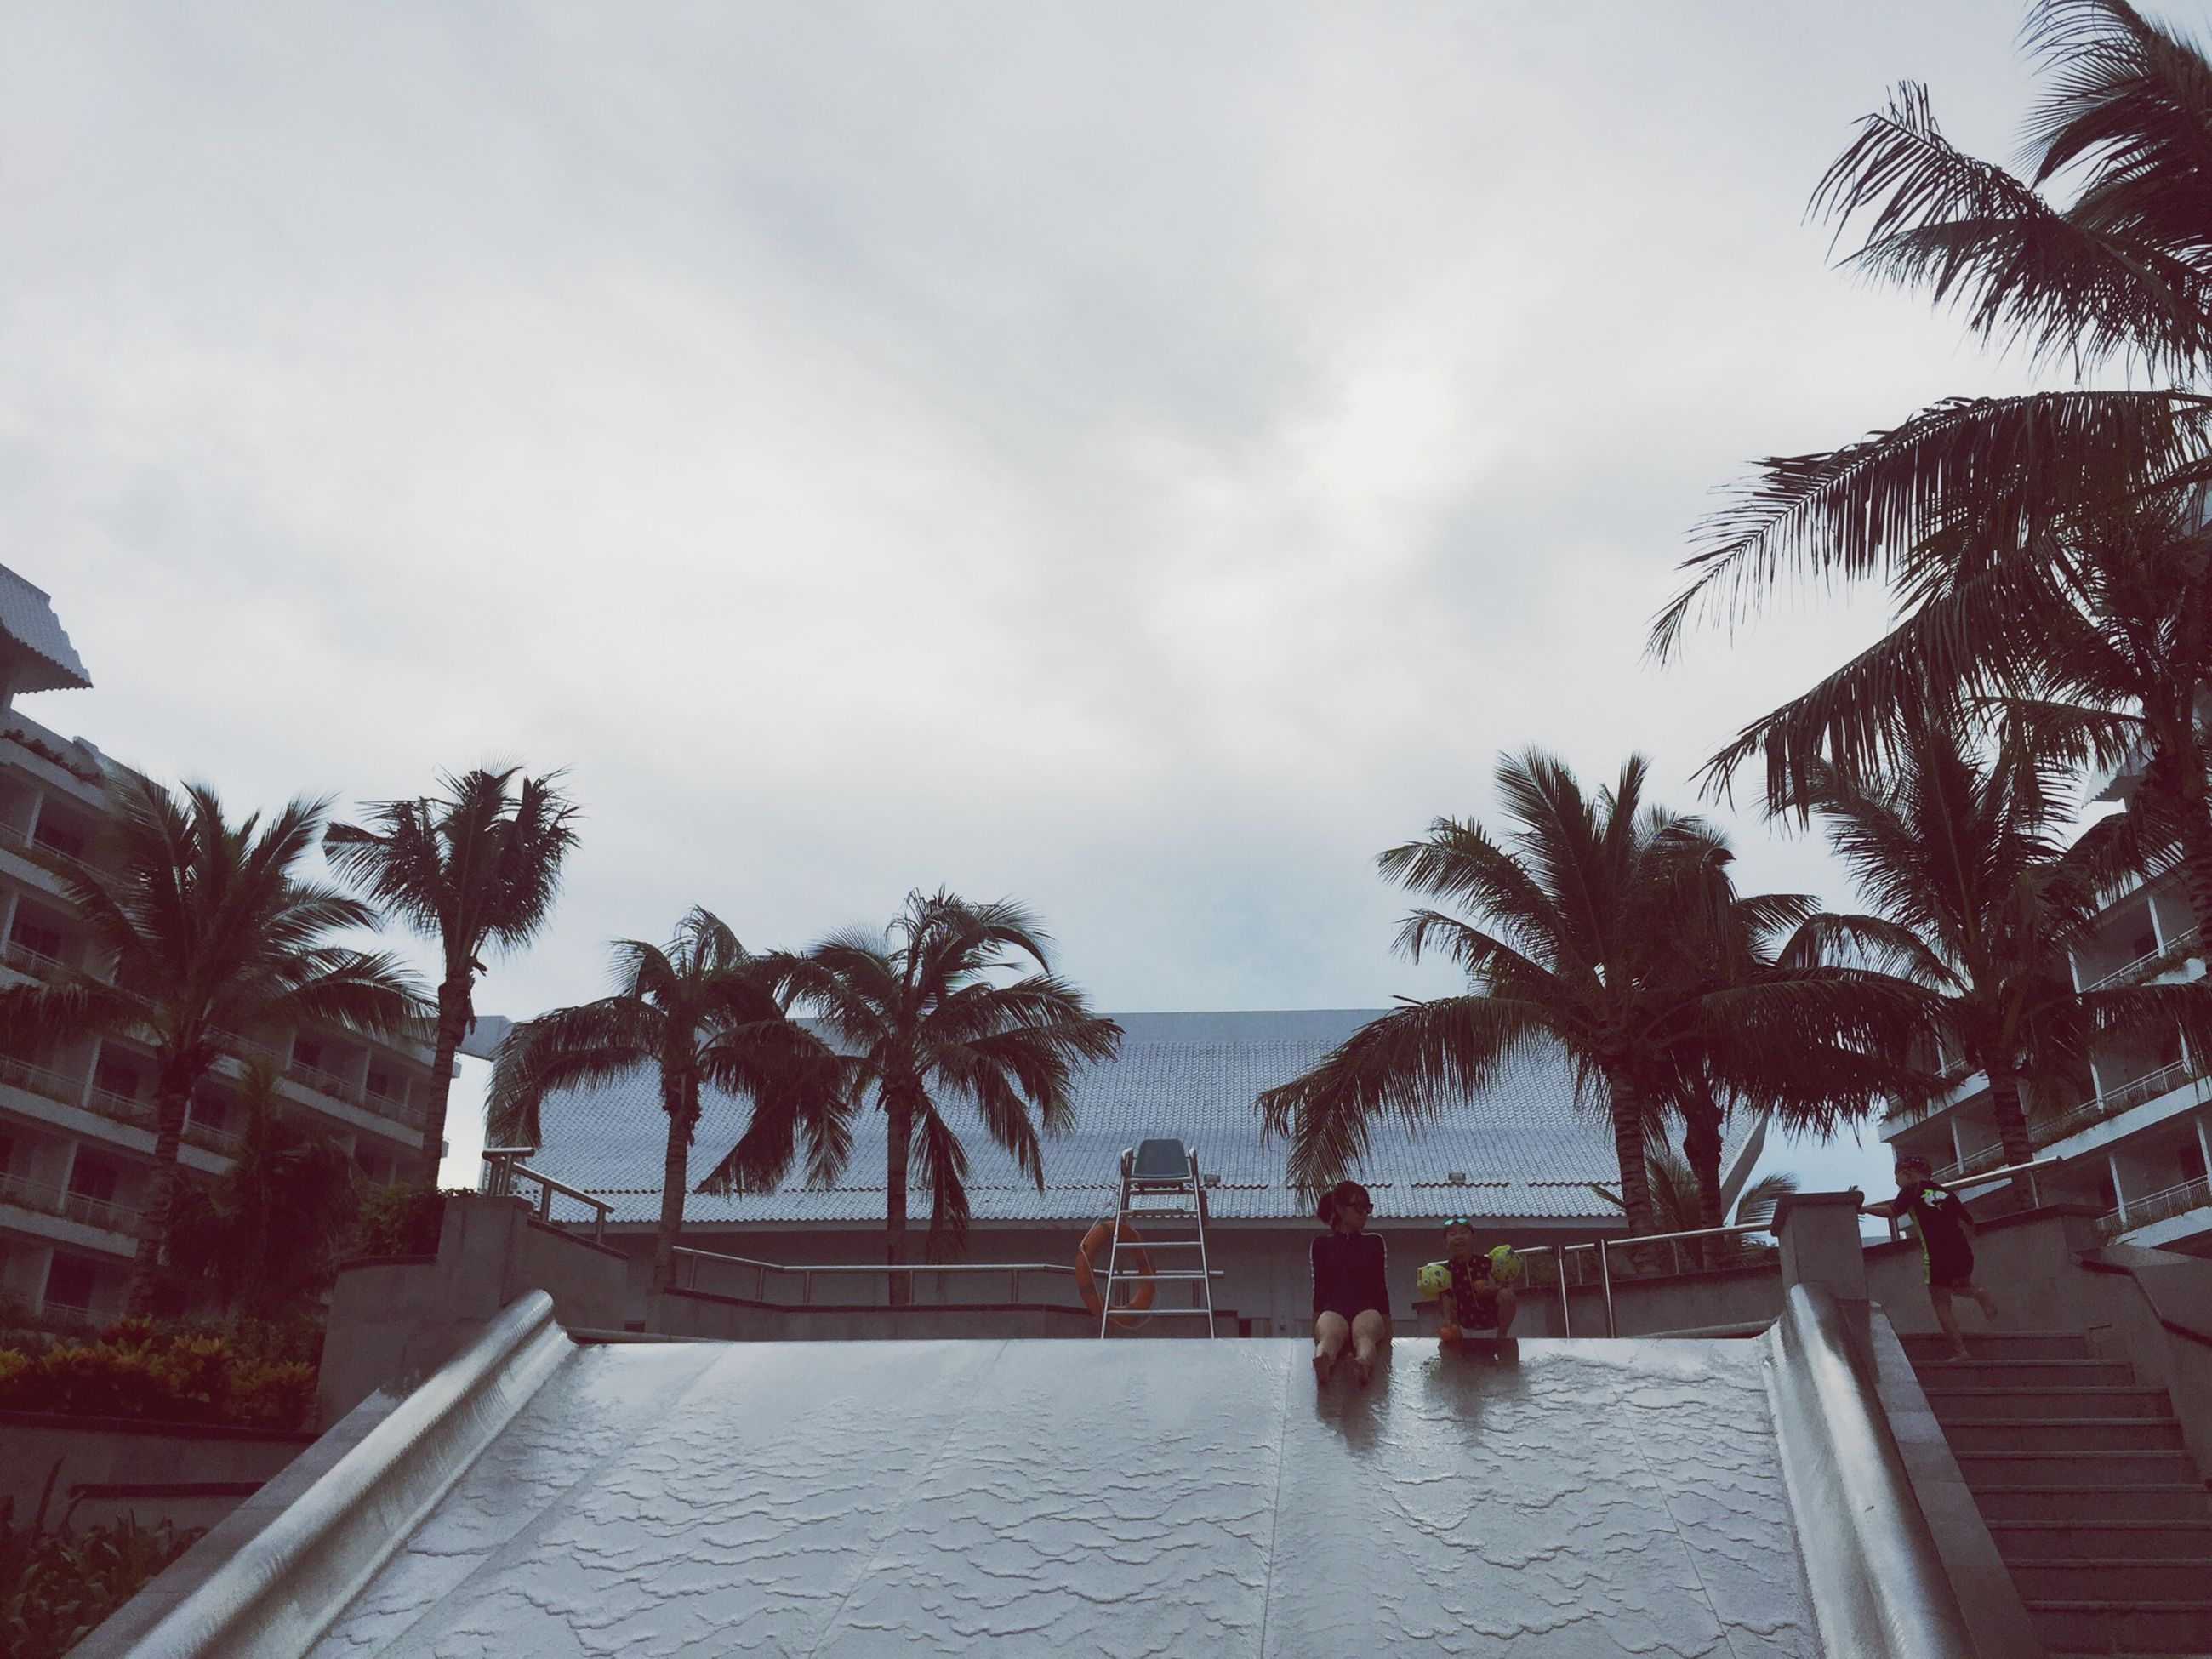 palm tree, sea, tree, water, swimming pool, beach, sky, tranquil scene, vacations, tranquility, scenics, nature, growth, tourism, cloud - sky, day, beauty in nature, coconut palm tree, outdoors, calm, tropical tree, shore, palm leaf, tourist resort, no people, ocean